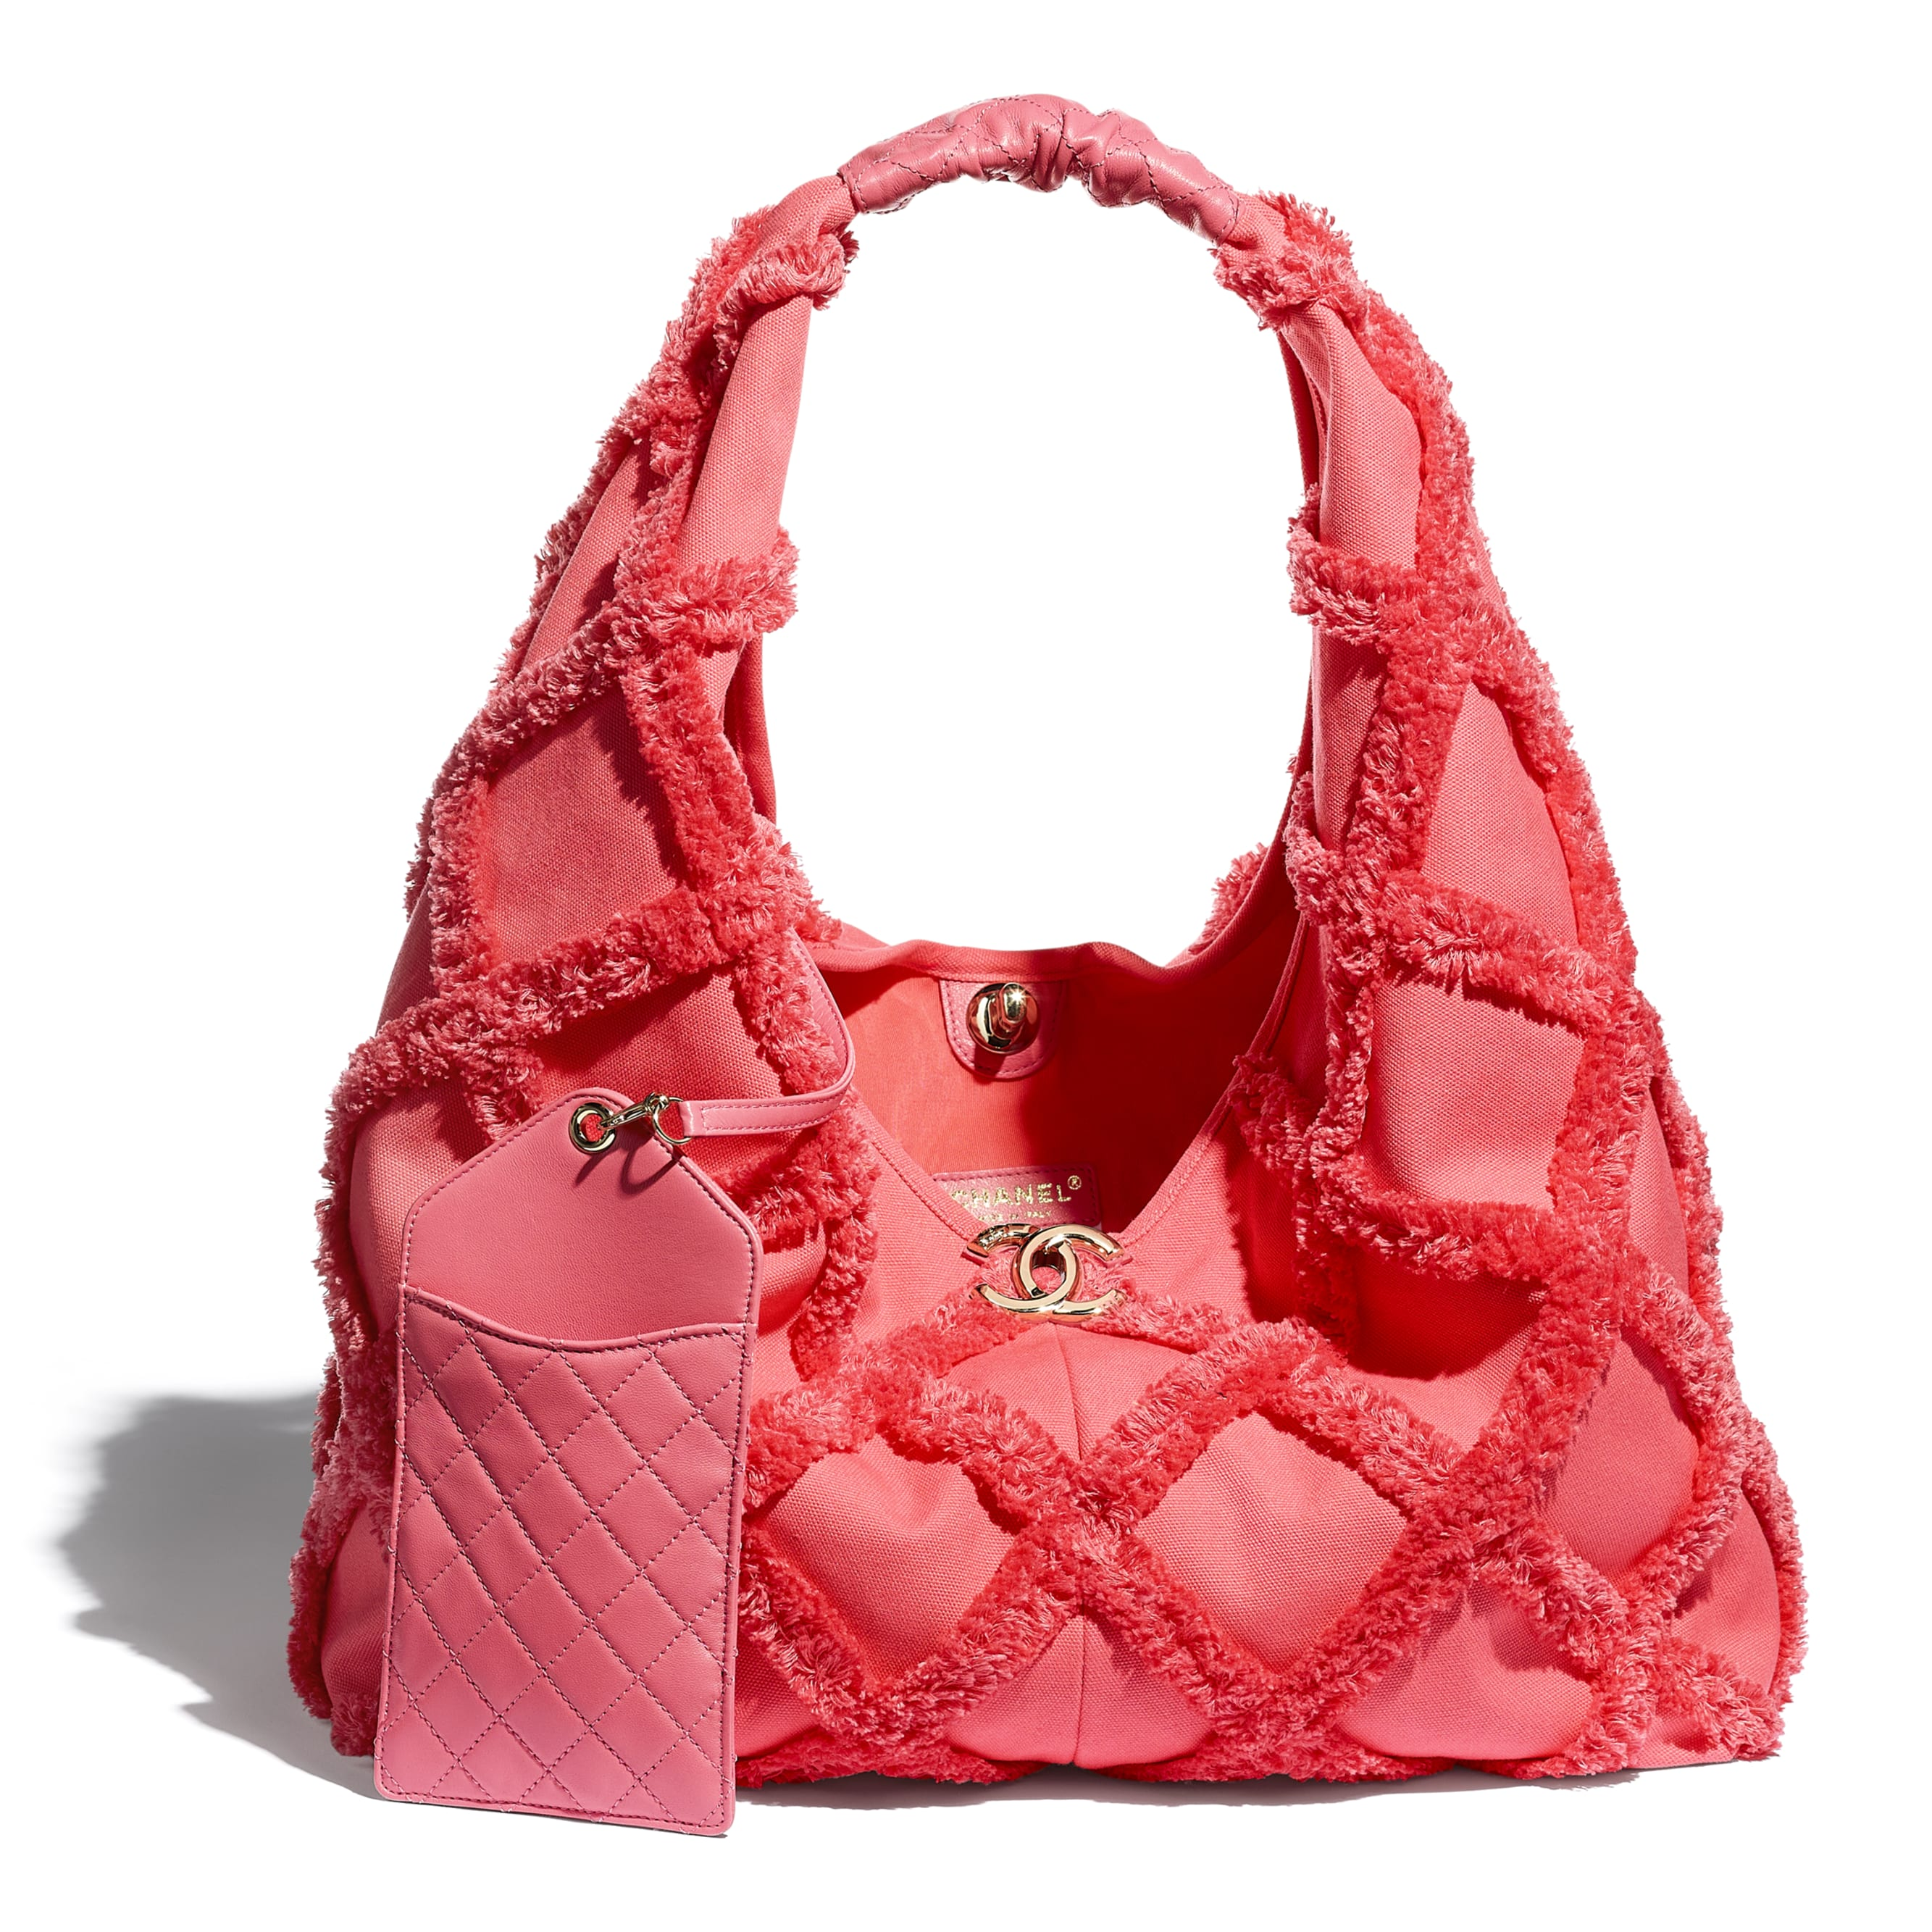 Large Hobo Bag - Coral - Cotton Canvas, Calfskin & Gold-Tone Metal - CHANEL - Other view - see standard sized version